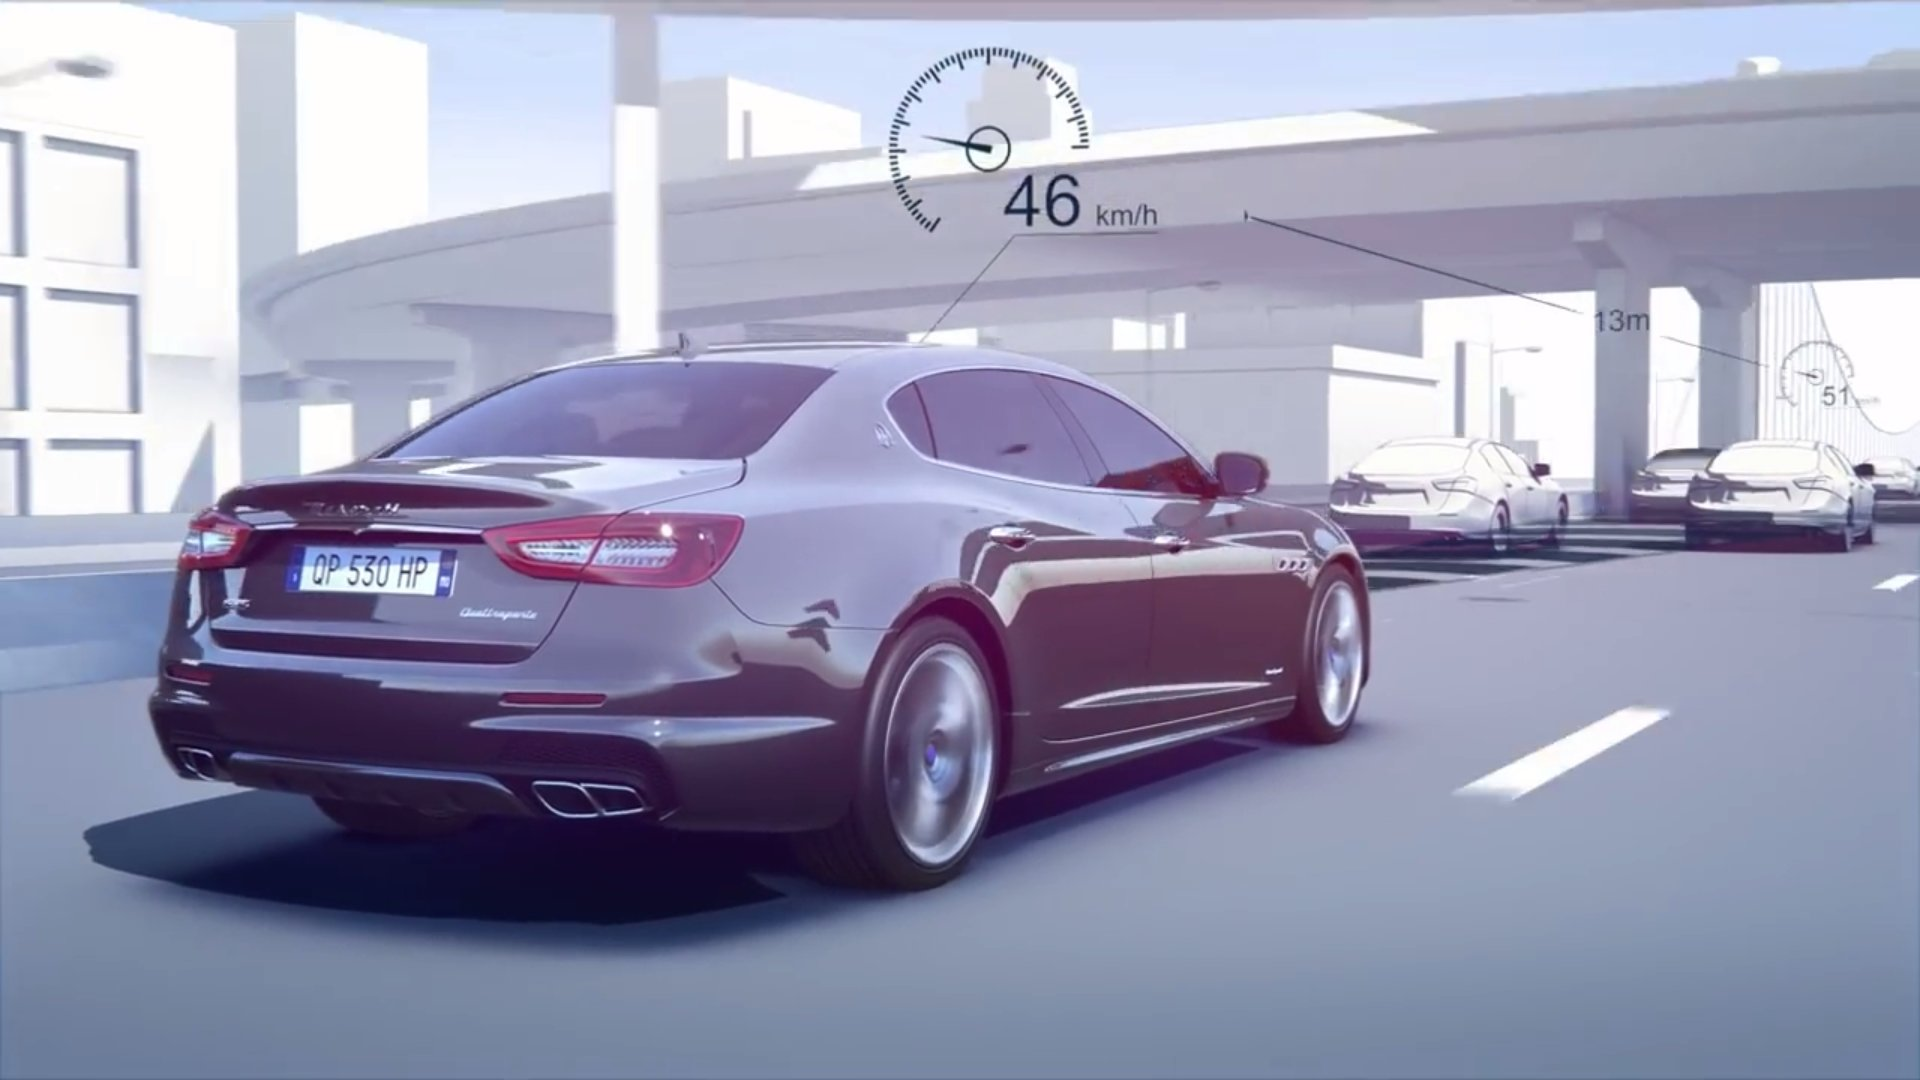 Automated safety features found in the maserati quattroporte